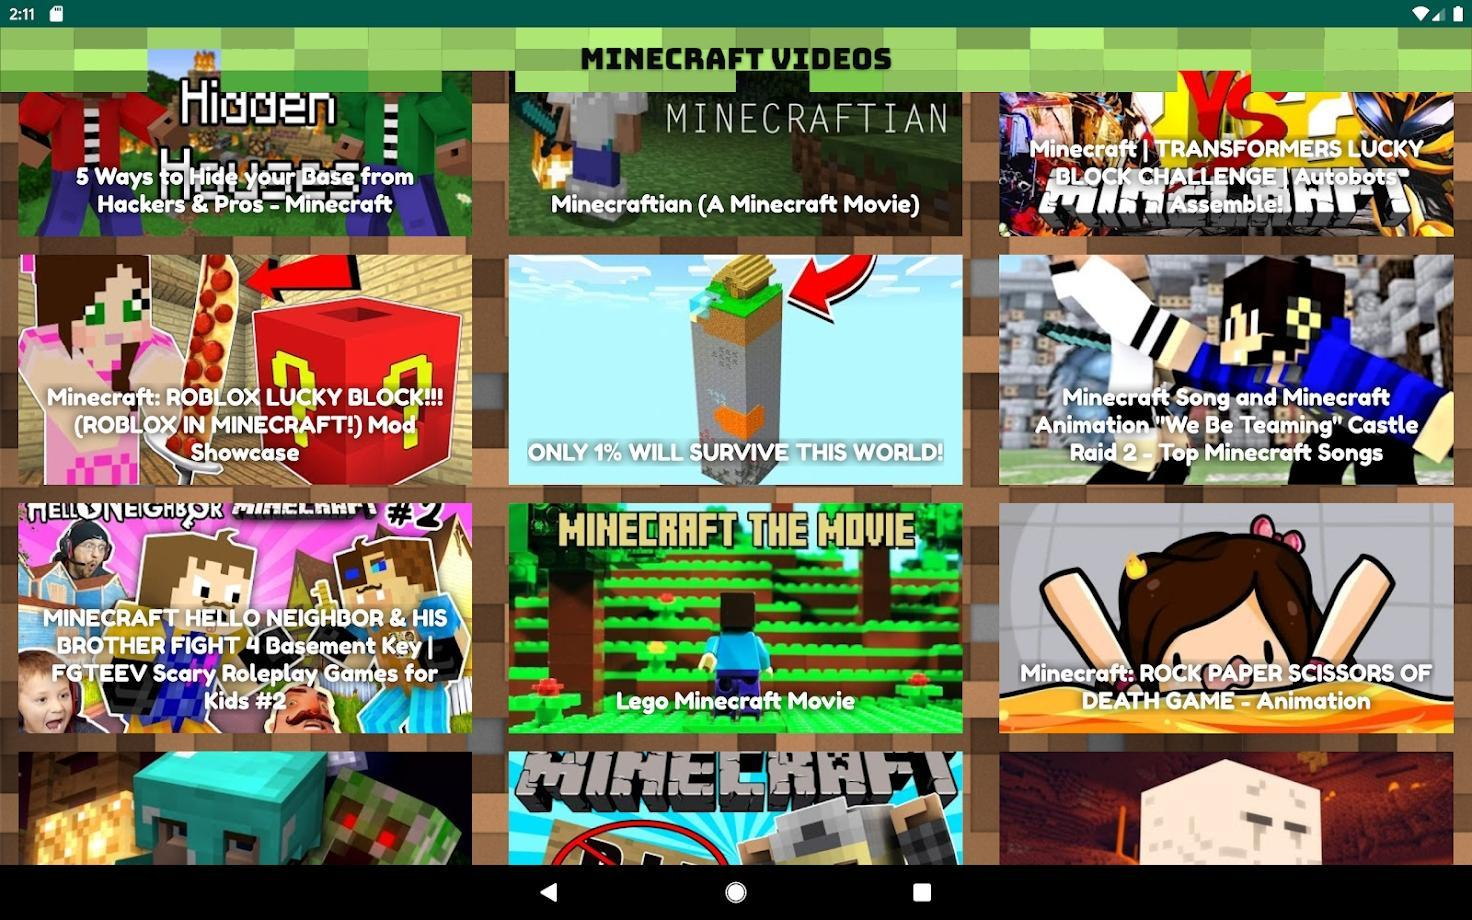 Fgteev Lucky Block Roblox Free Minecraft Videos Education And Tricks For Android Apk Download